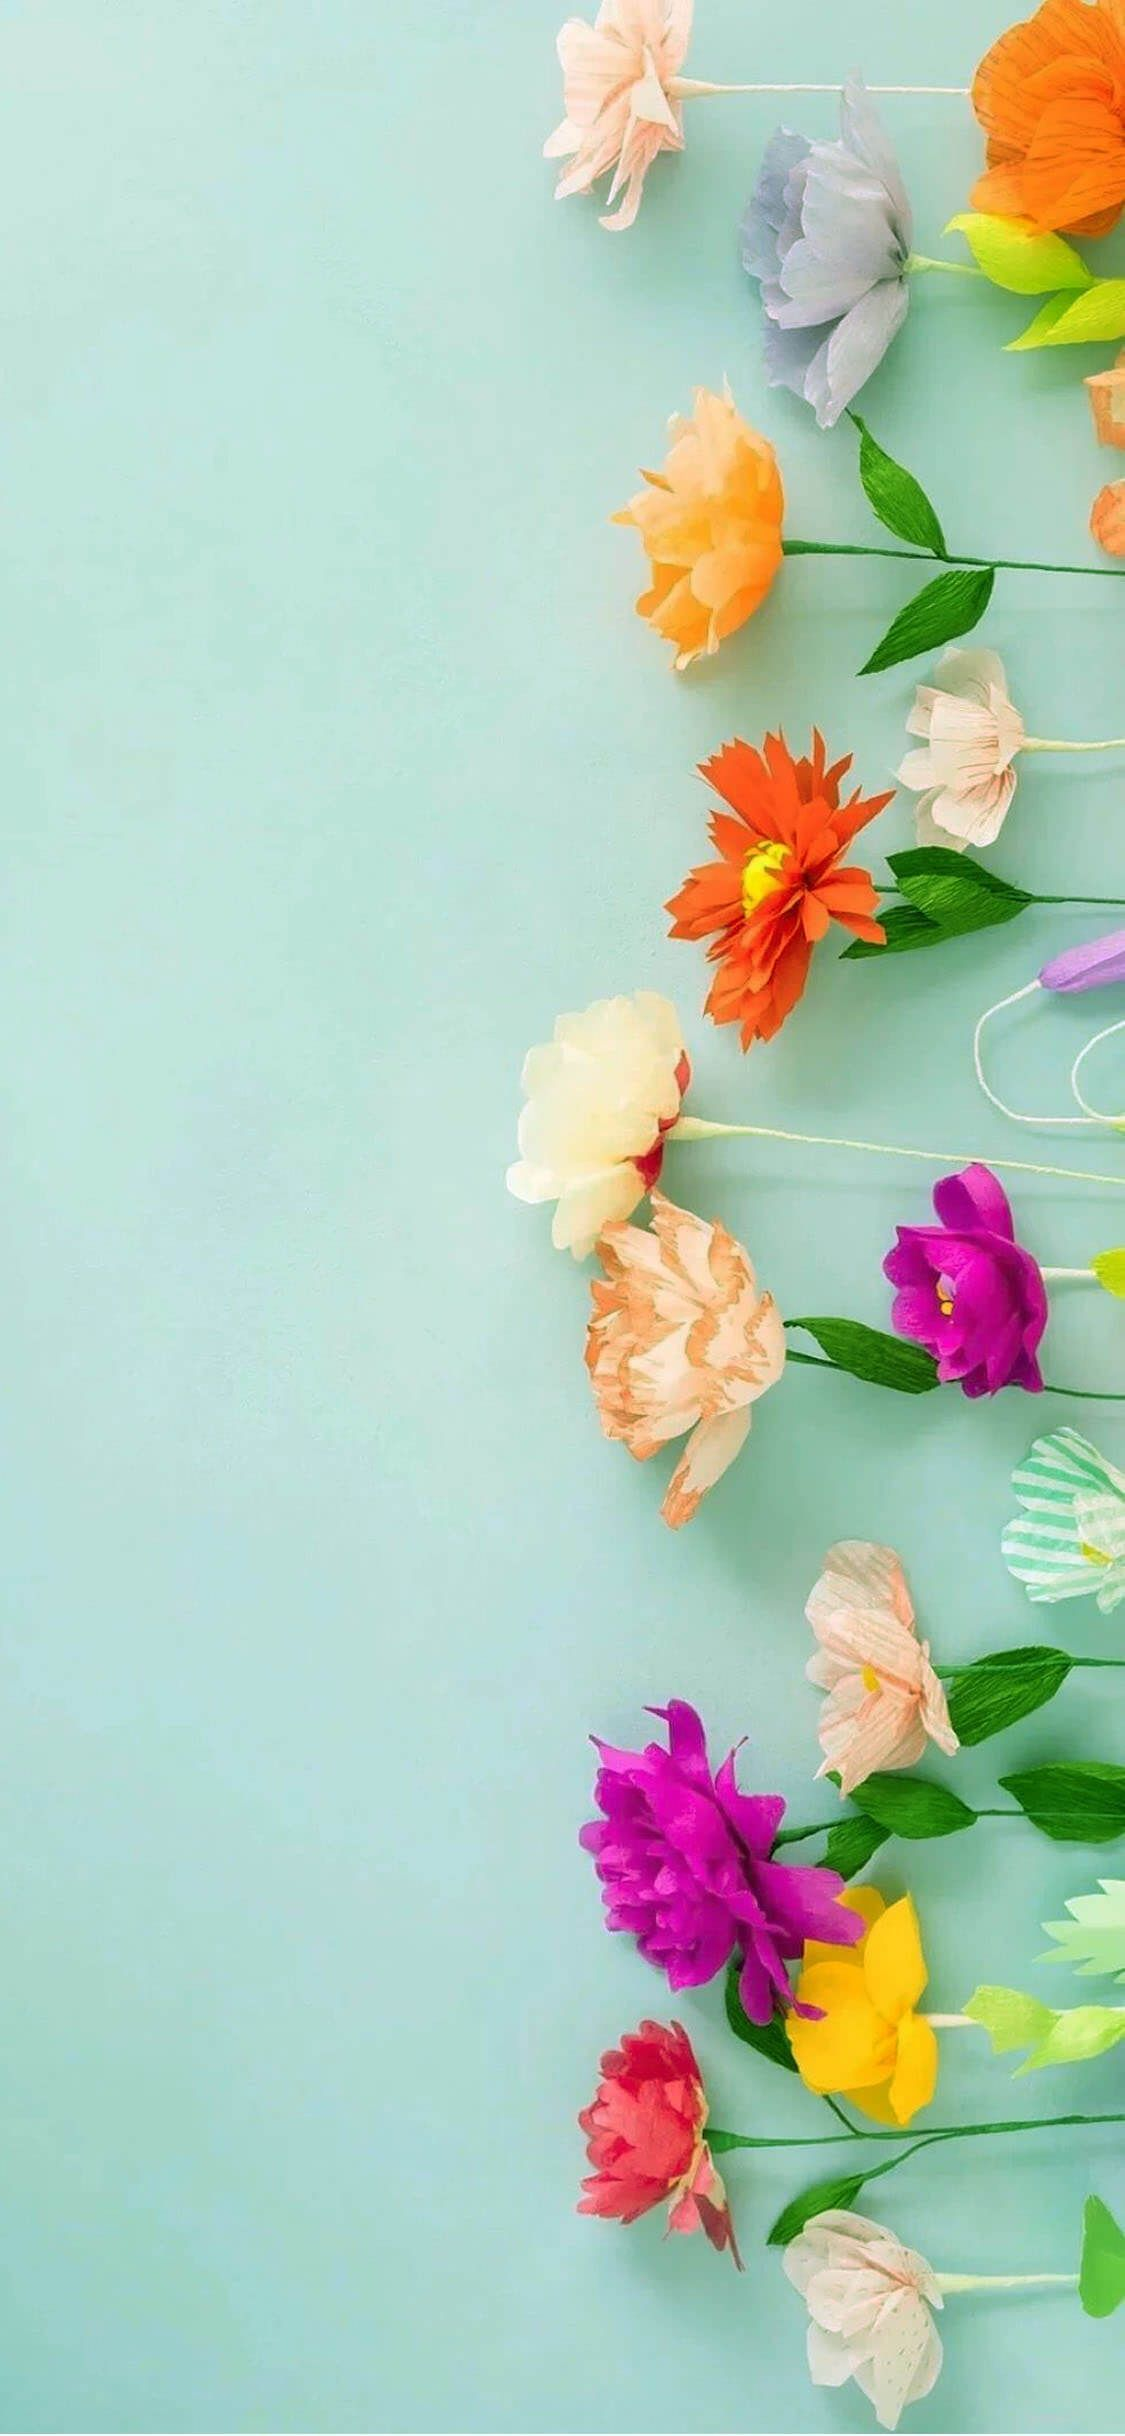 Aesthetic Iphone Pastel Floral Wallpaper Hd 2020 画像あり